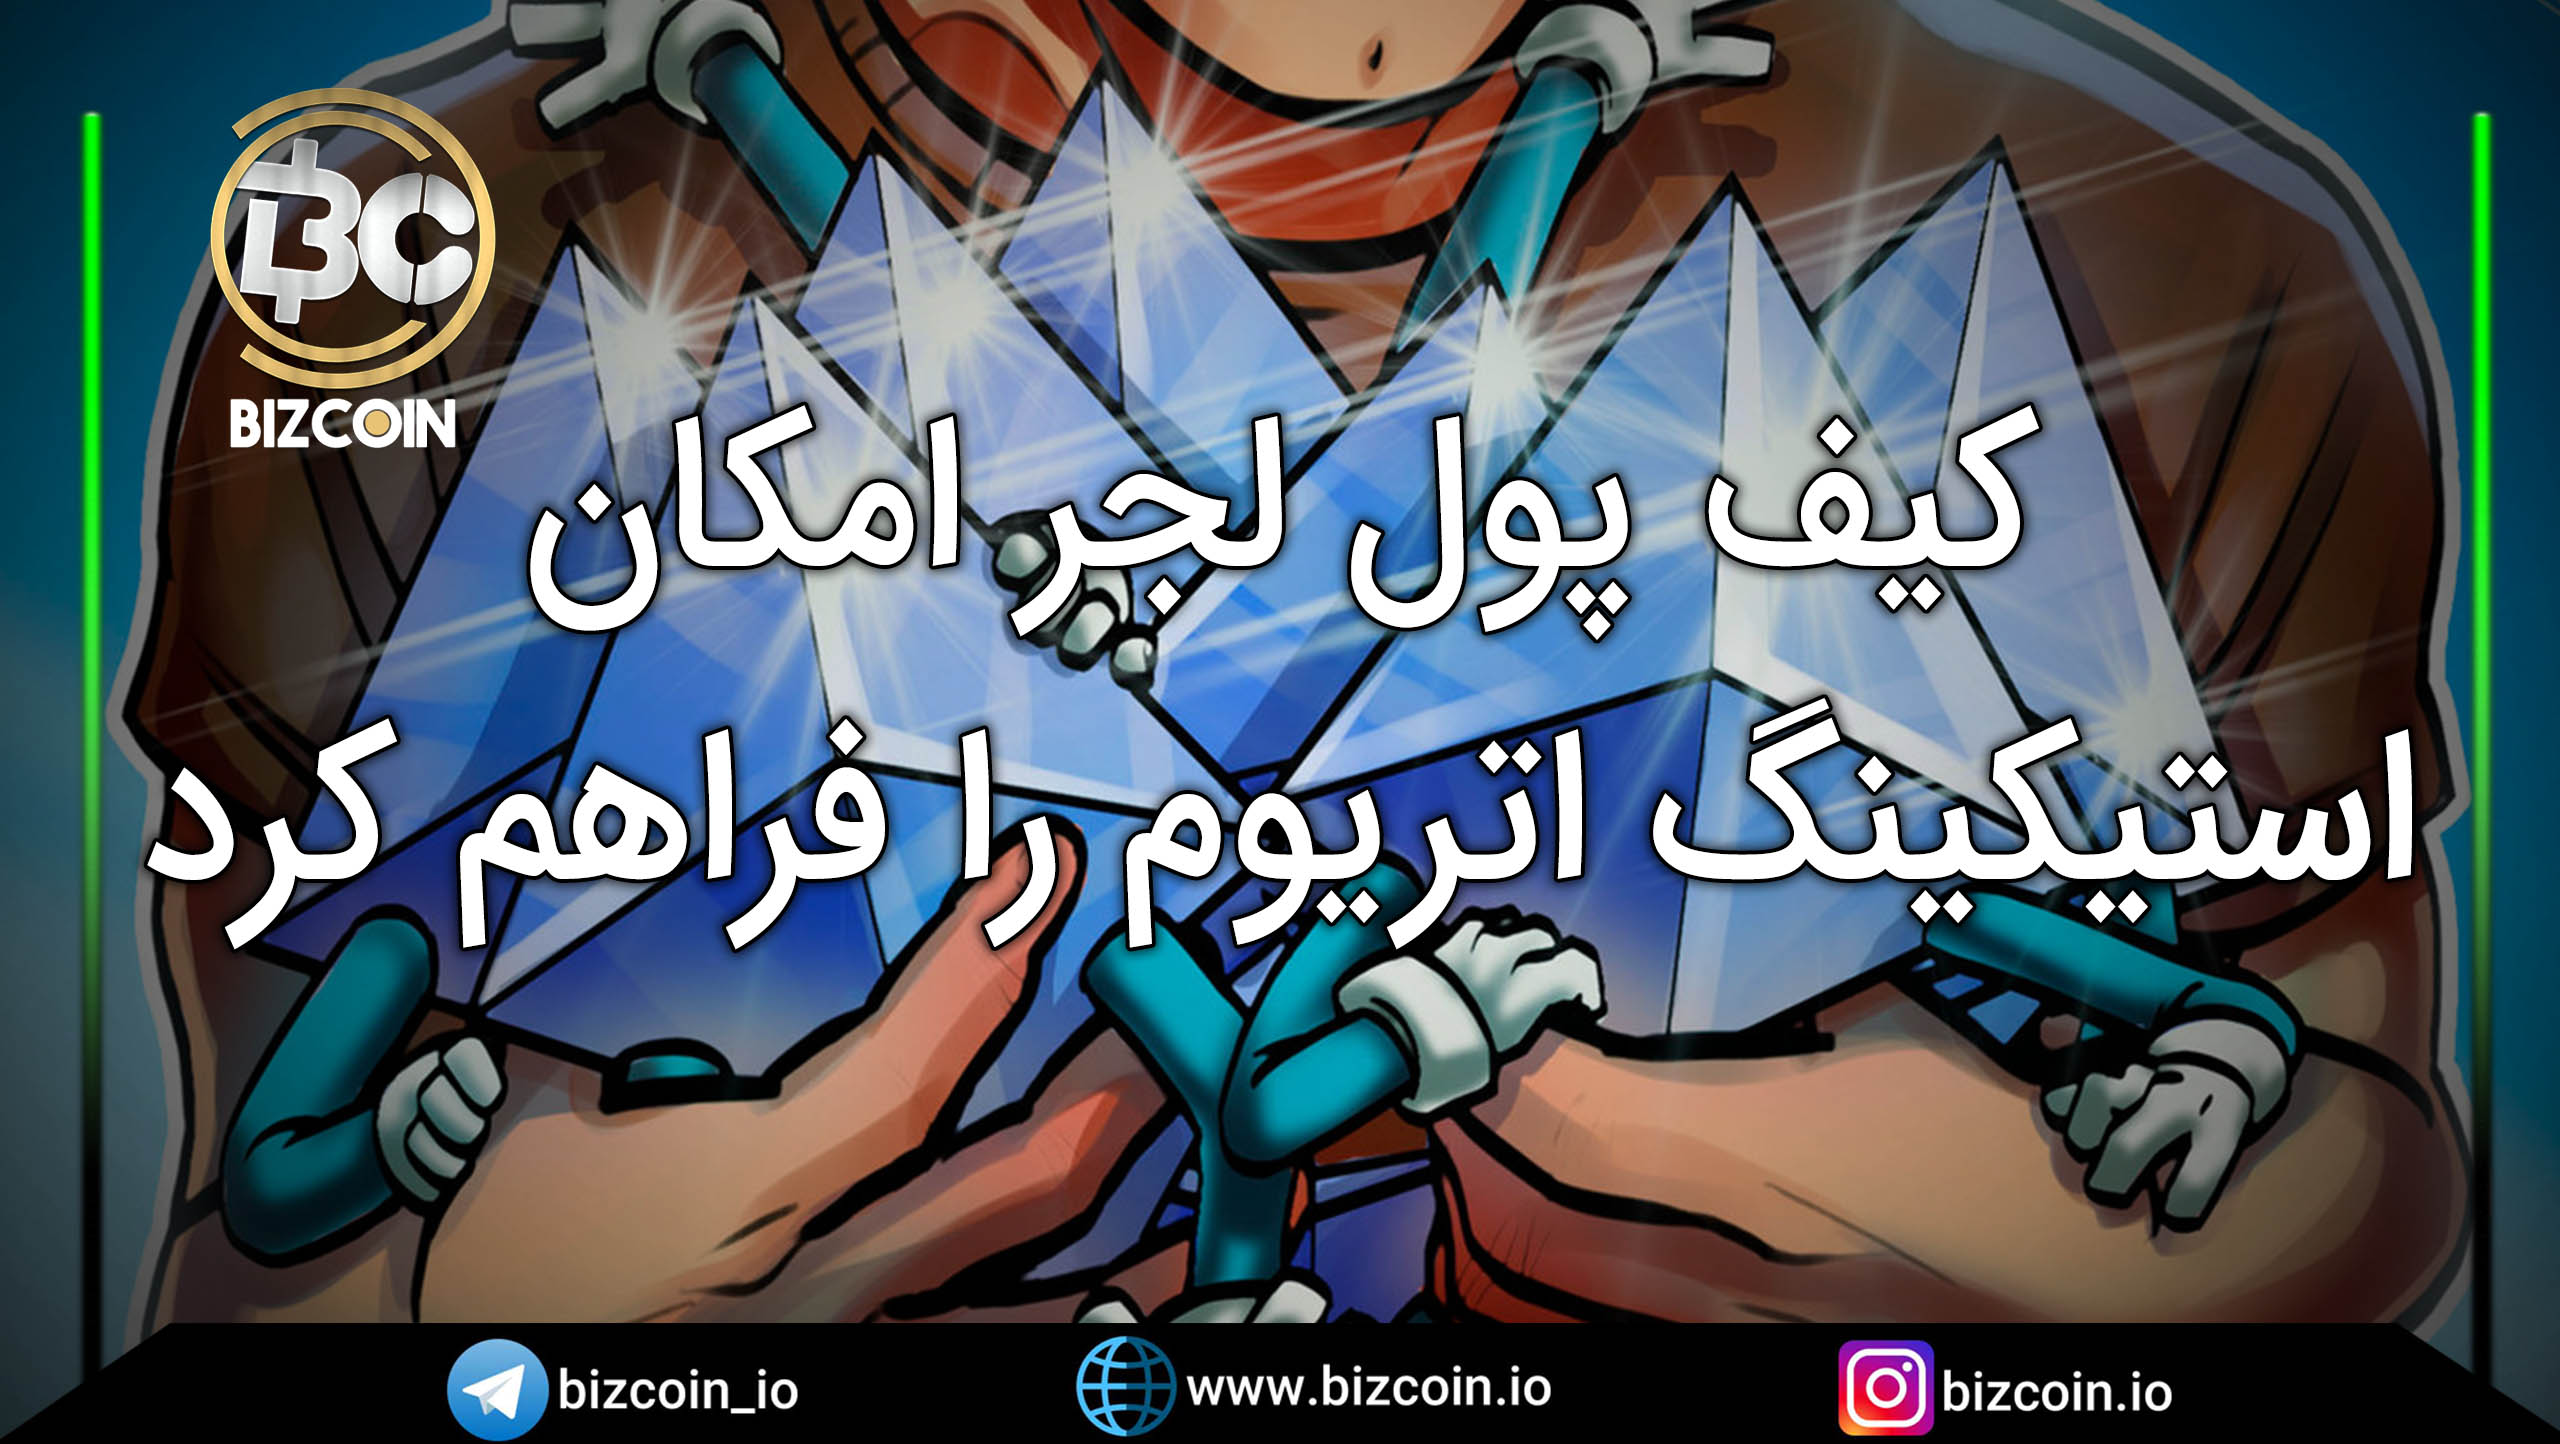 ledger wallet made it possible to stick to the ethereum کیف پول لجر امکان استیکینگ اتریوم را فراهم کرد